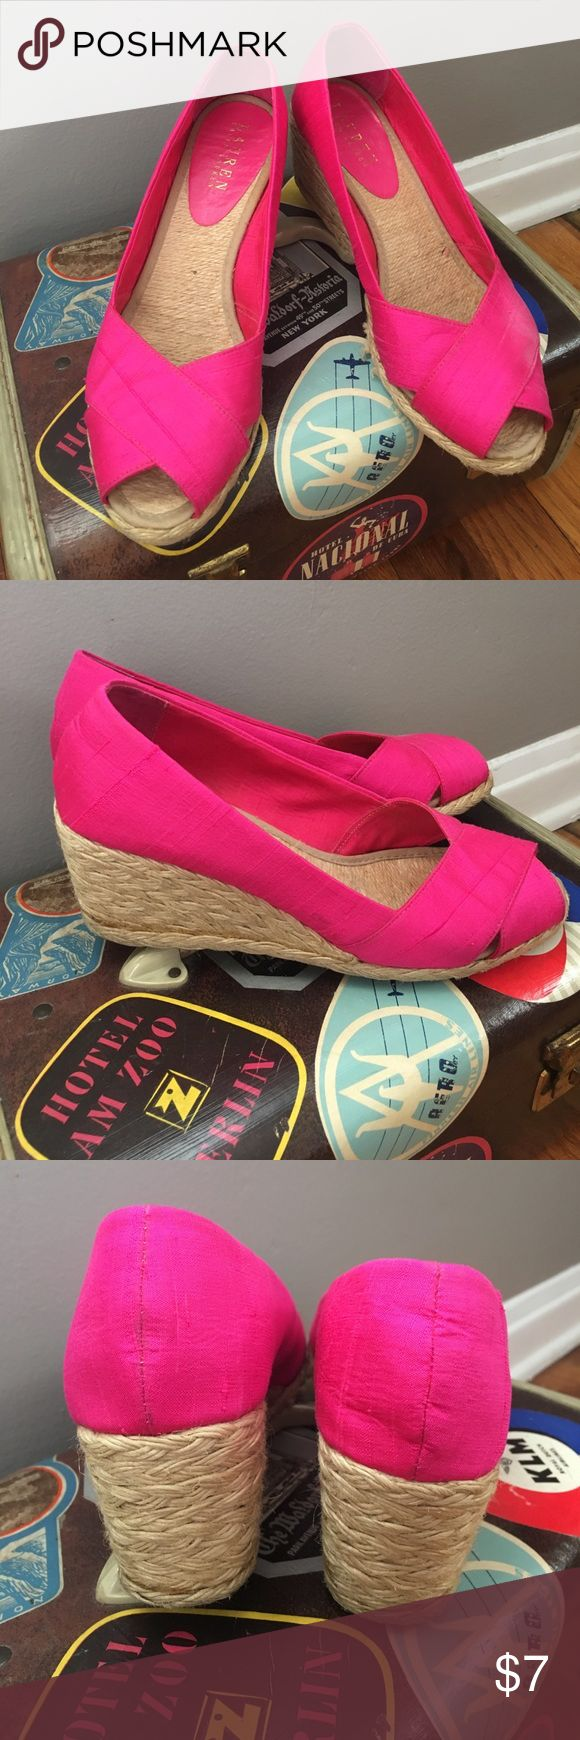 Lauren by Ralph Lauren Hot Pink Espadrilles Picnic ready! Style: Cecilia. Color: Fuschia. Fading on left shoe shown on last pic. Home of cute dog and no smoke. Lauren Ralph Lauren Shoes Espadrilles